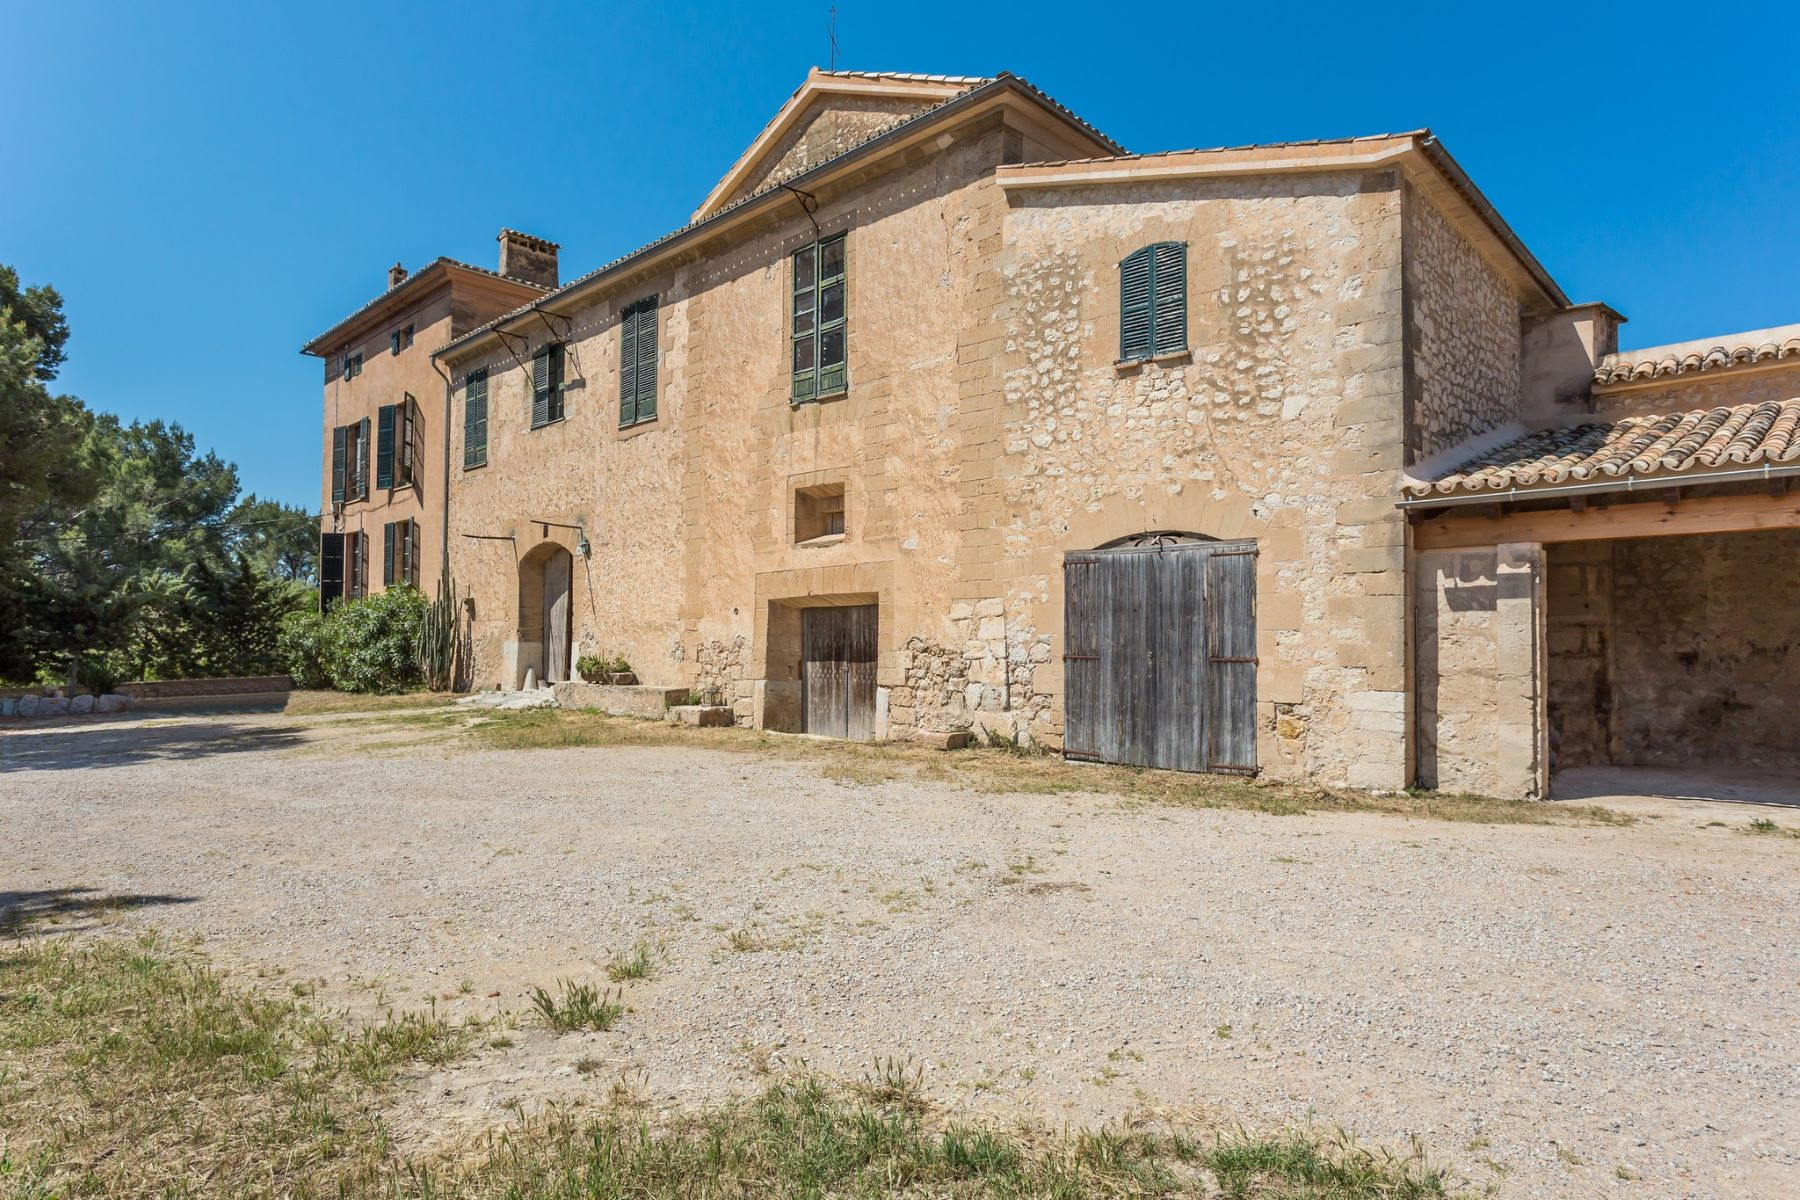 Single Family Home for Sale at The historic Mallorcan property in Paguera Andratx, Mallorca Spain